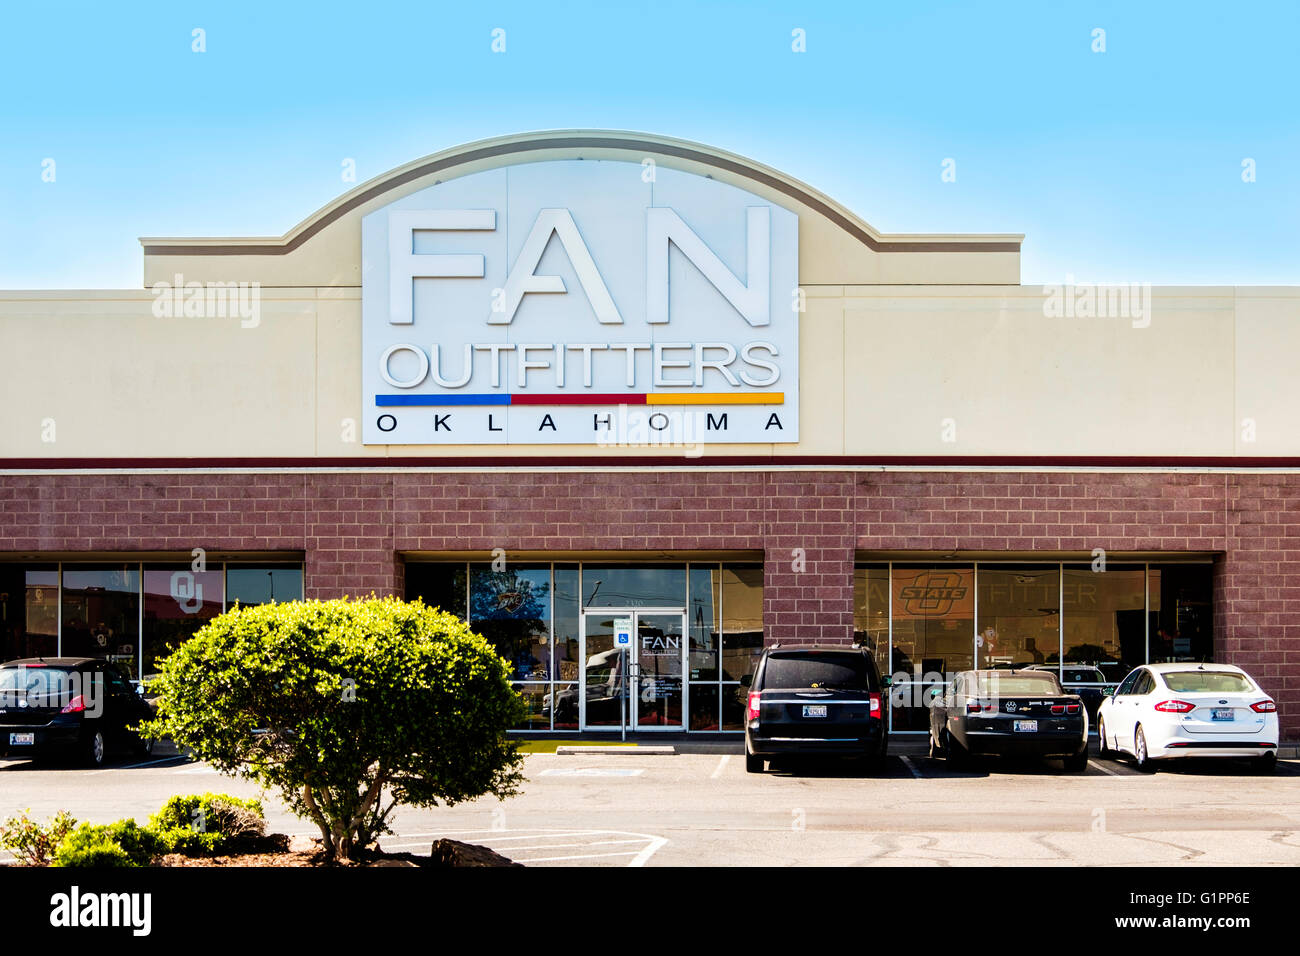 fan outfitters. stock photo - the exterior of fan outfitters, a shop selling jerseys and sportswear for fan. oklahoma city, oklahoma, usa outfitters t